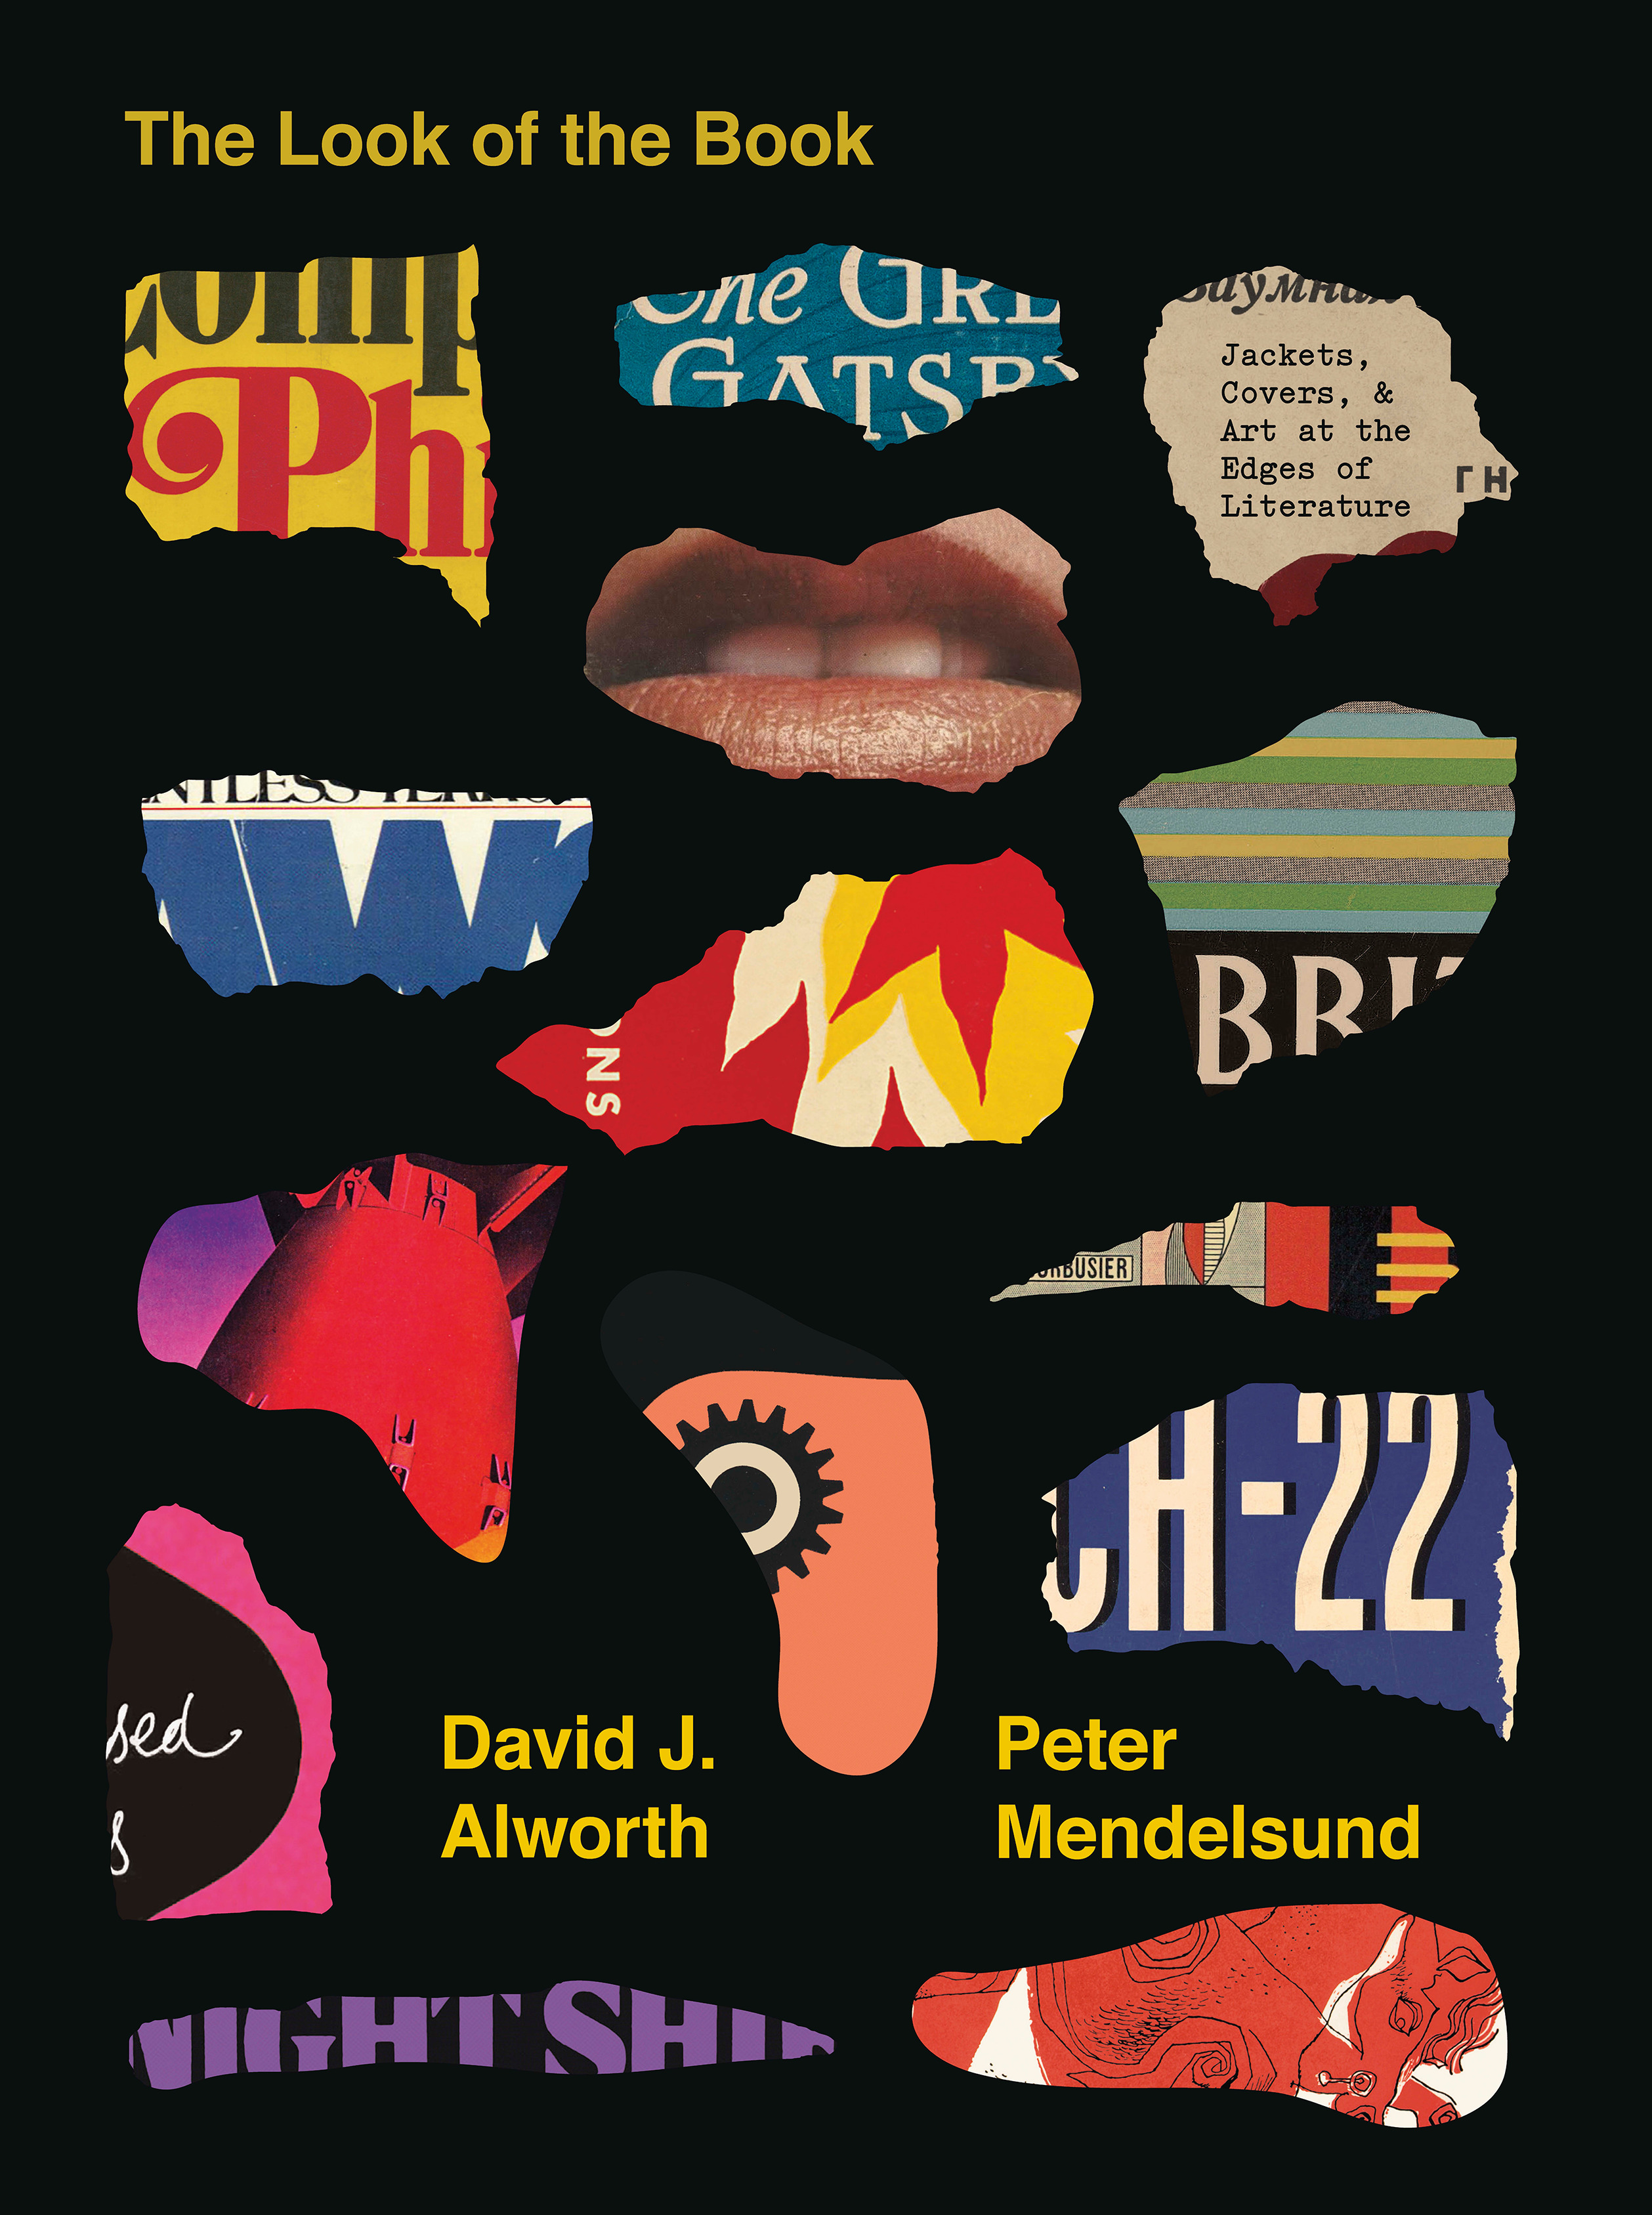 Virtual Book Launch: Look of the Book by Peter Mendelsund and David J. Alworth